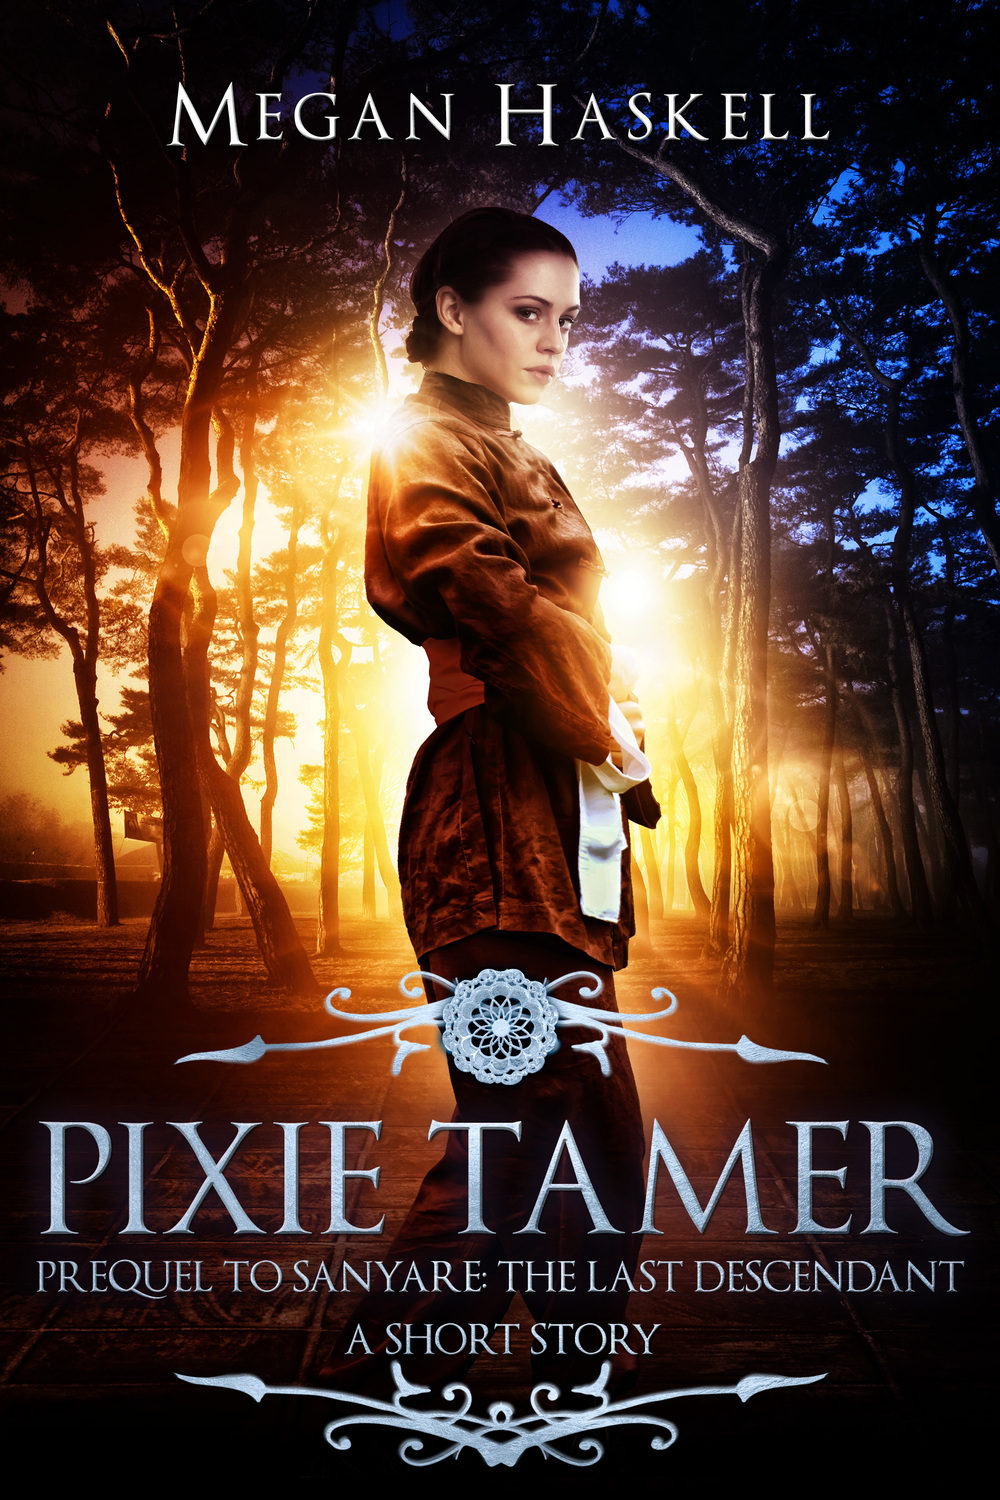 And so does  Pixie Tamer!